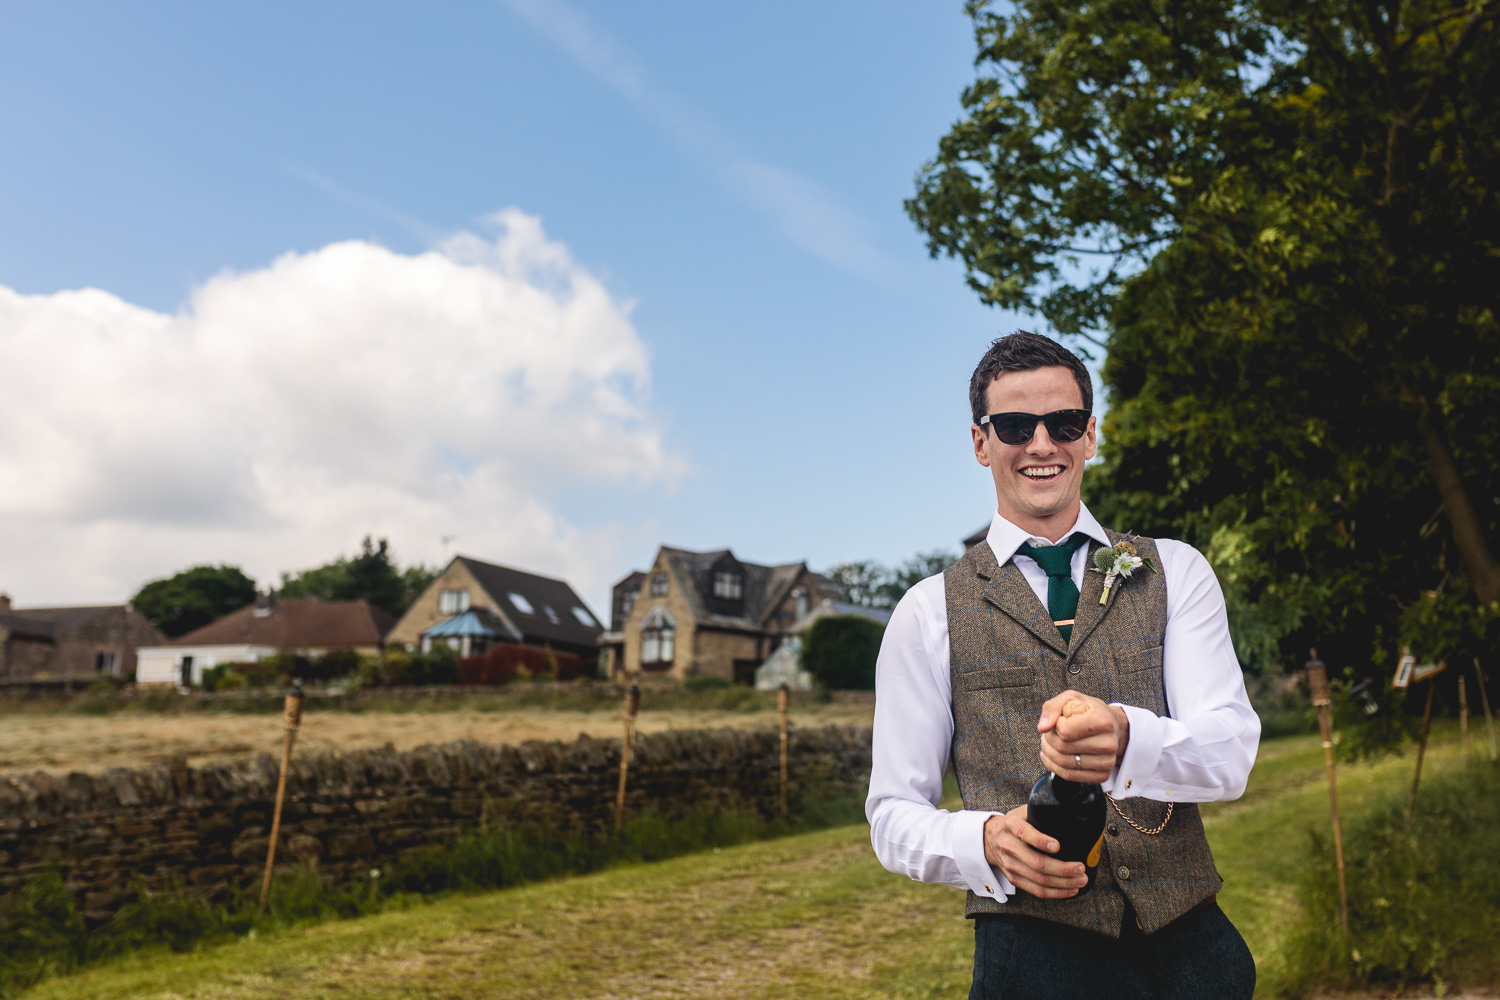 Fun groom wearing sunglasses and rustic tweed suit in outdoor field in sheffield popping a bottle of prosecco